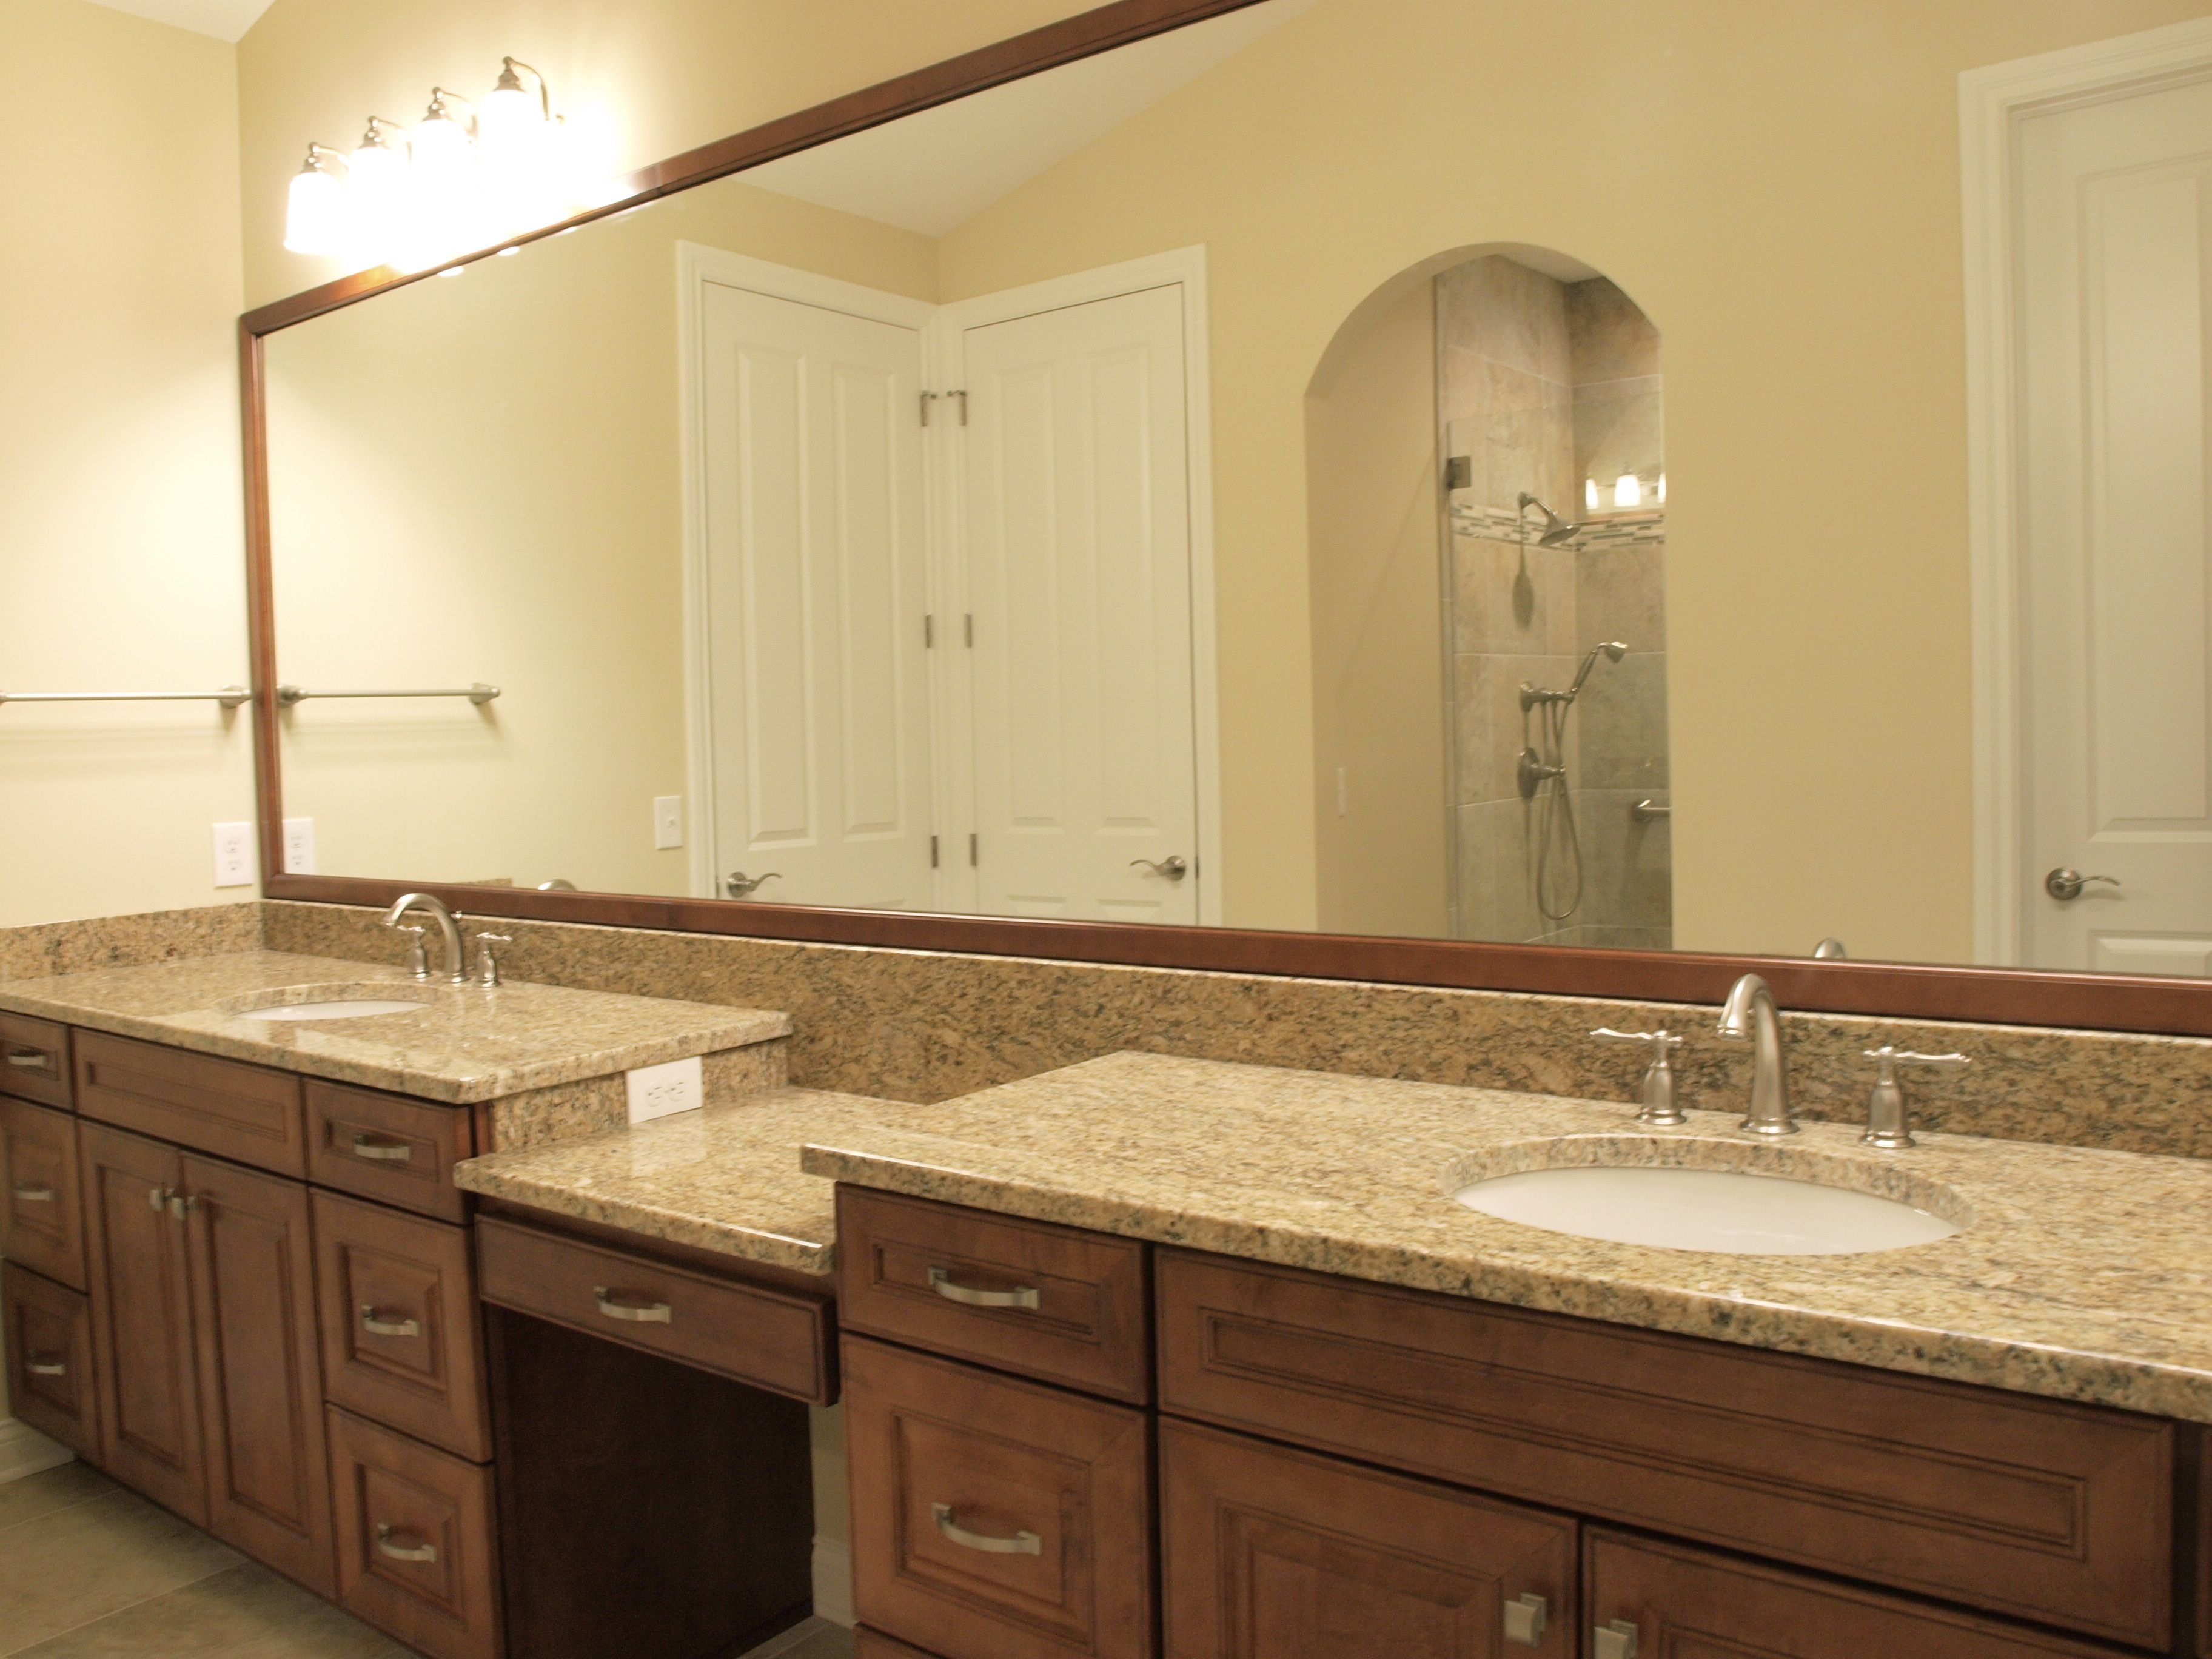 Oakland Hills Home Granite countertops and Moldings